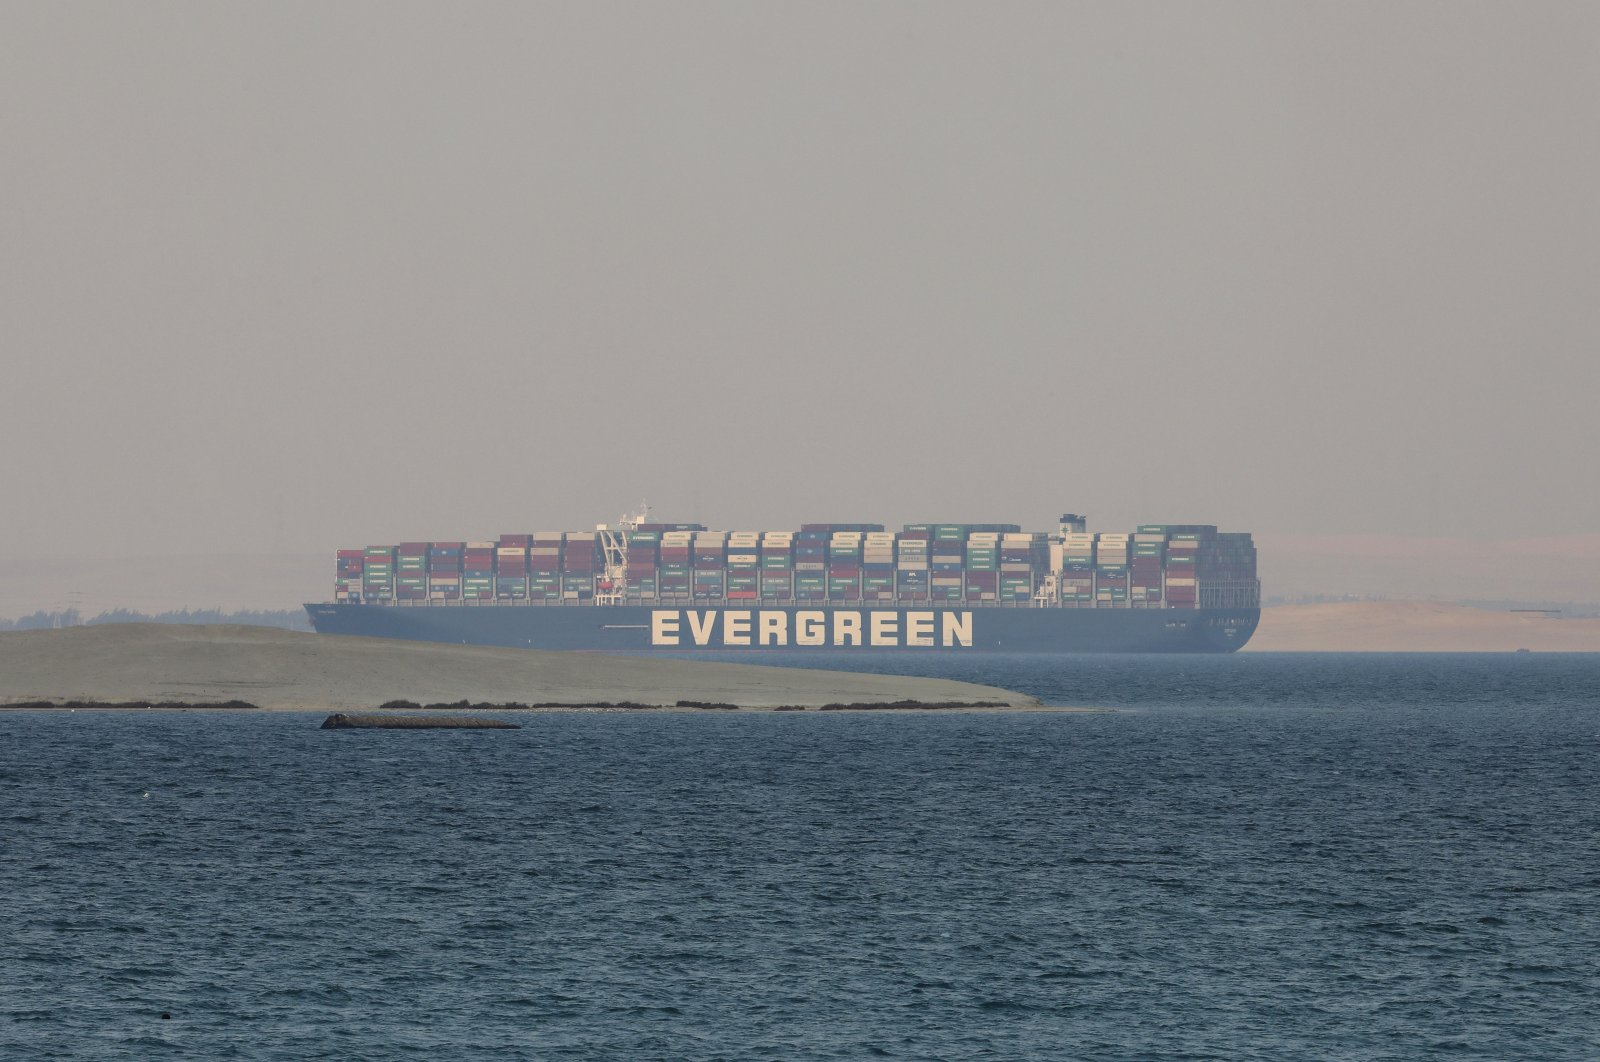 The Ever Given, a Panama-flagged cargo ship, in Great Bitter Lake, Egypt, March 30, 2021. (AP Photo)